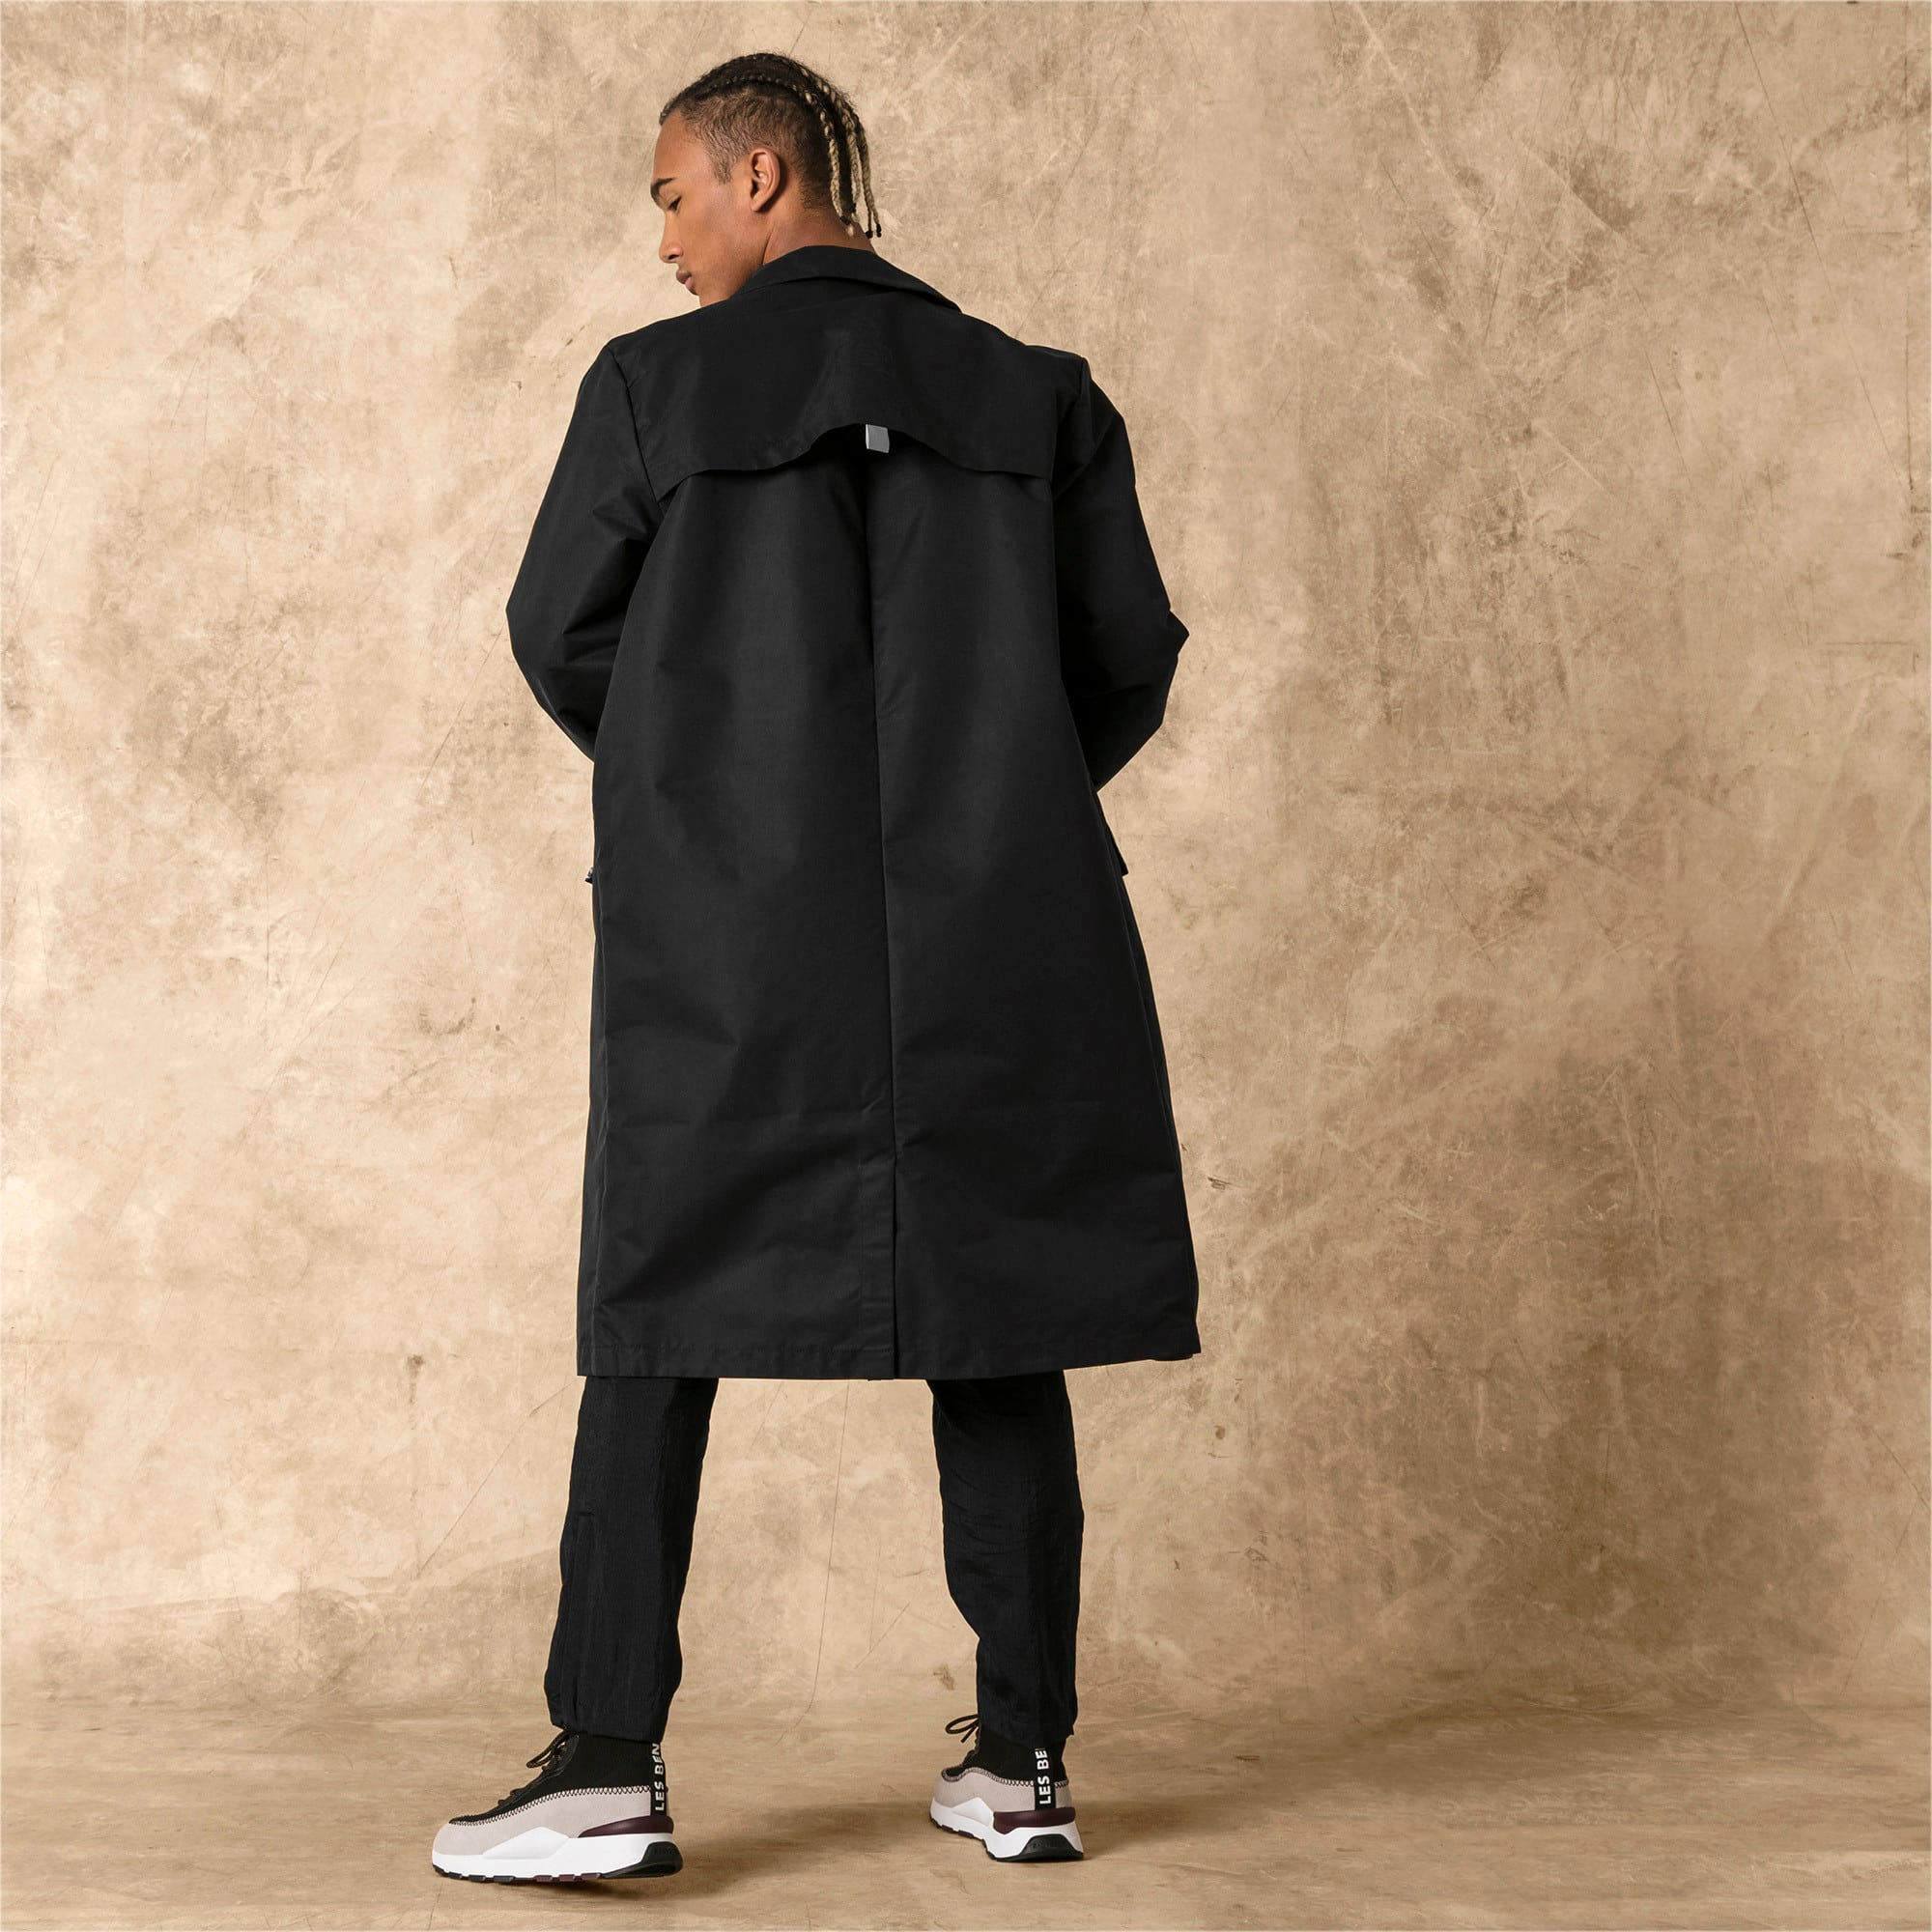 Thumbnail 2 of PUMA x LES BENJAMINS Men's Parka, Puma Black, medium